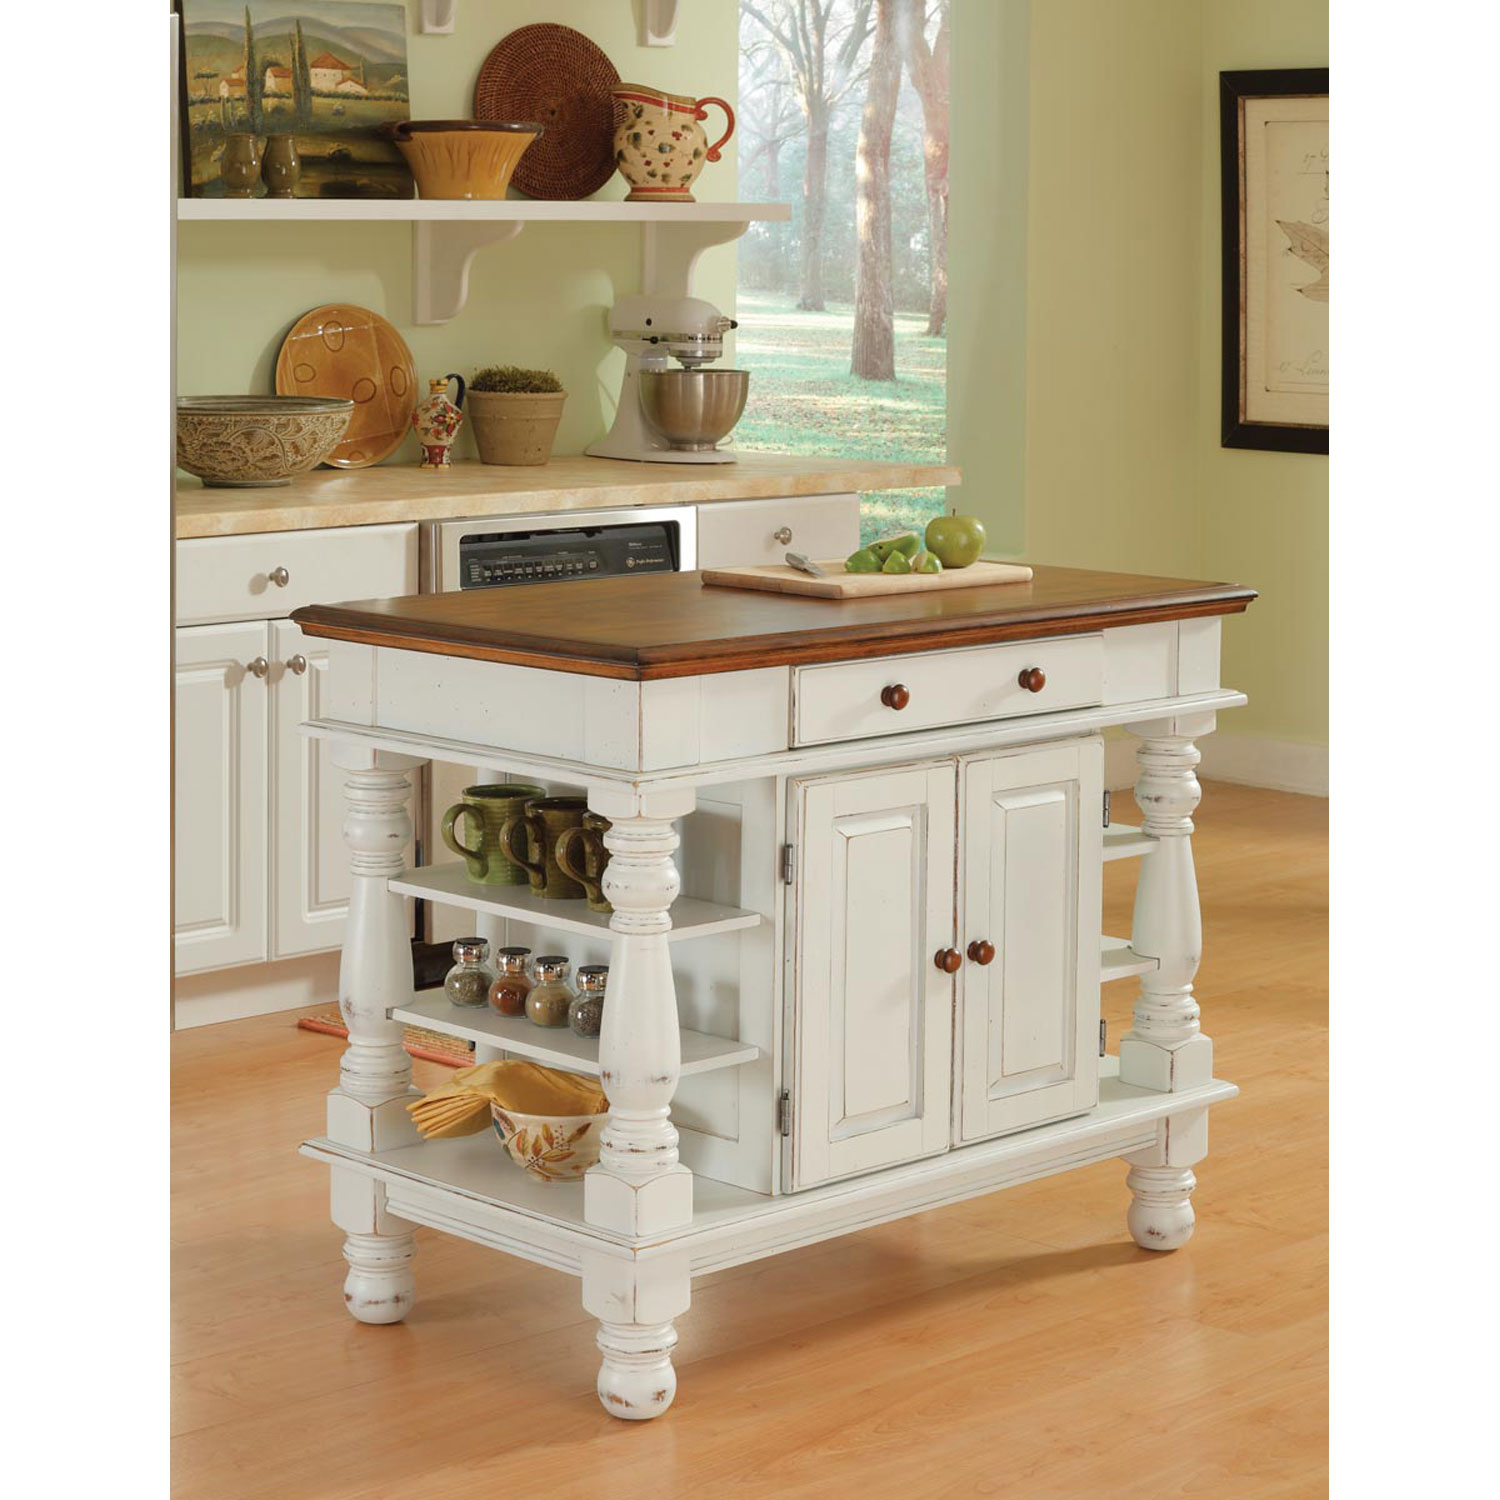 Kitchen Islands & Carts Category